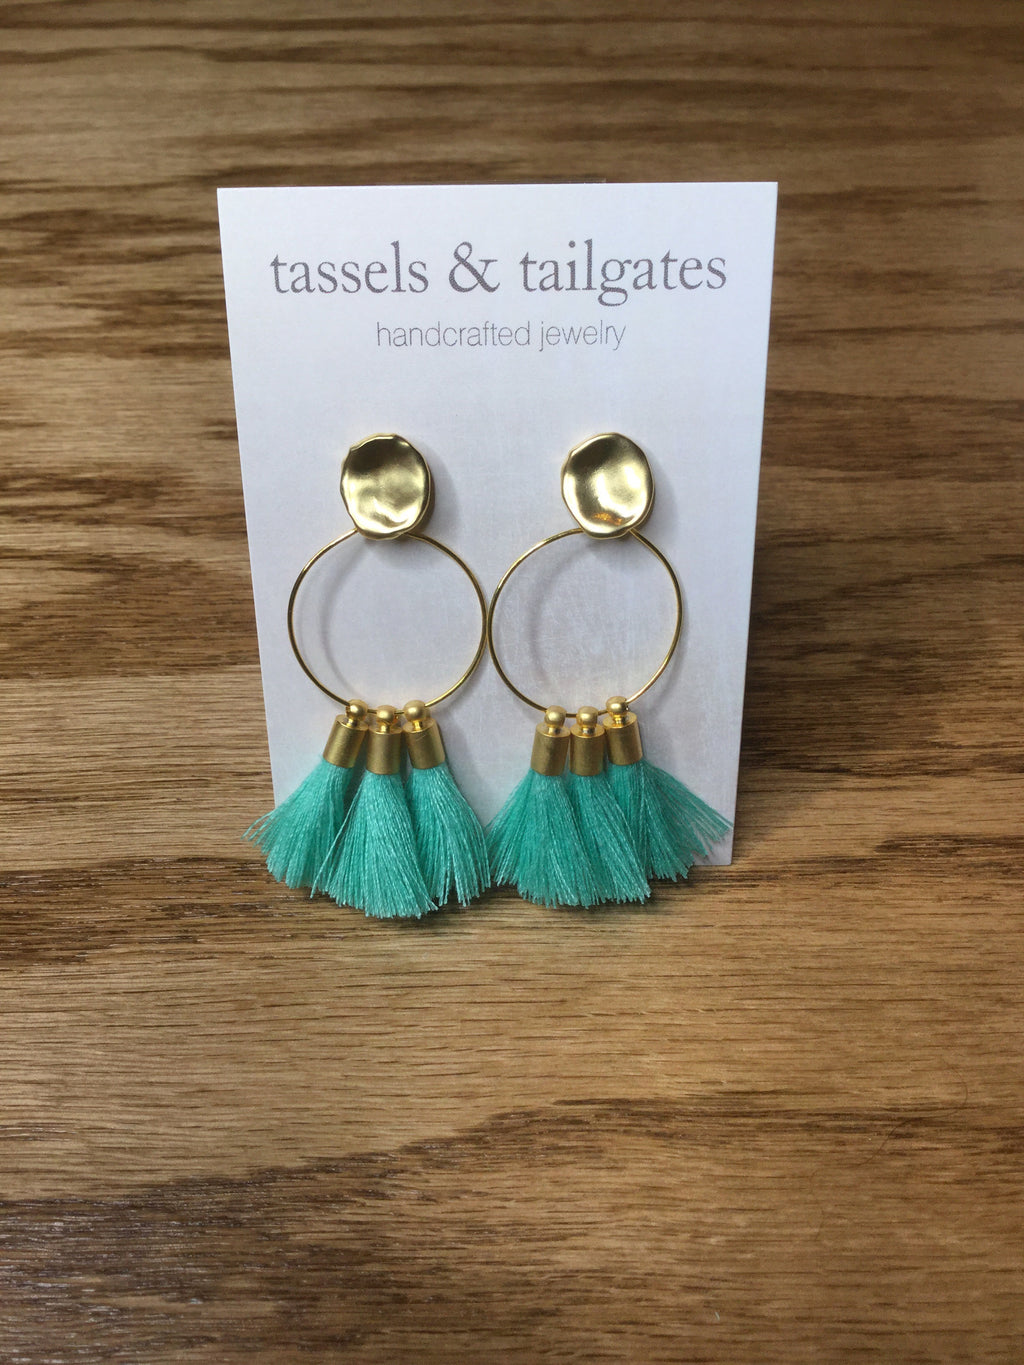 Ashton Tassel Hoop Stud Earrings in Aqua